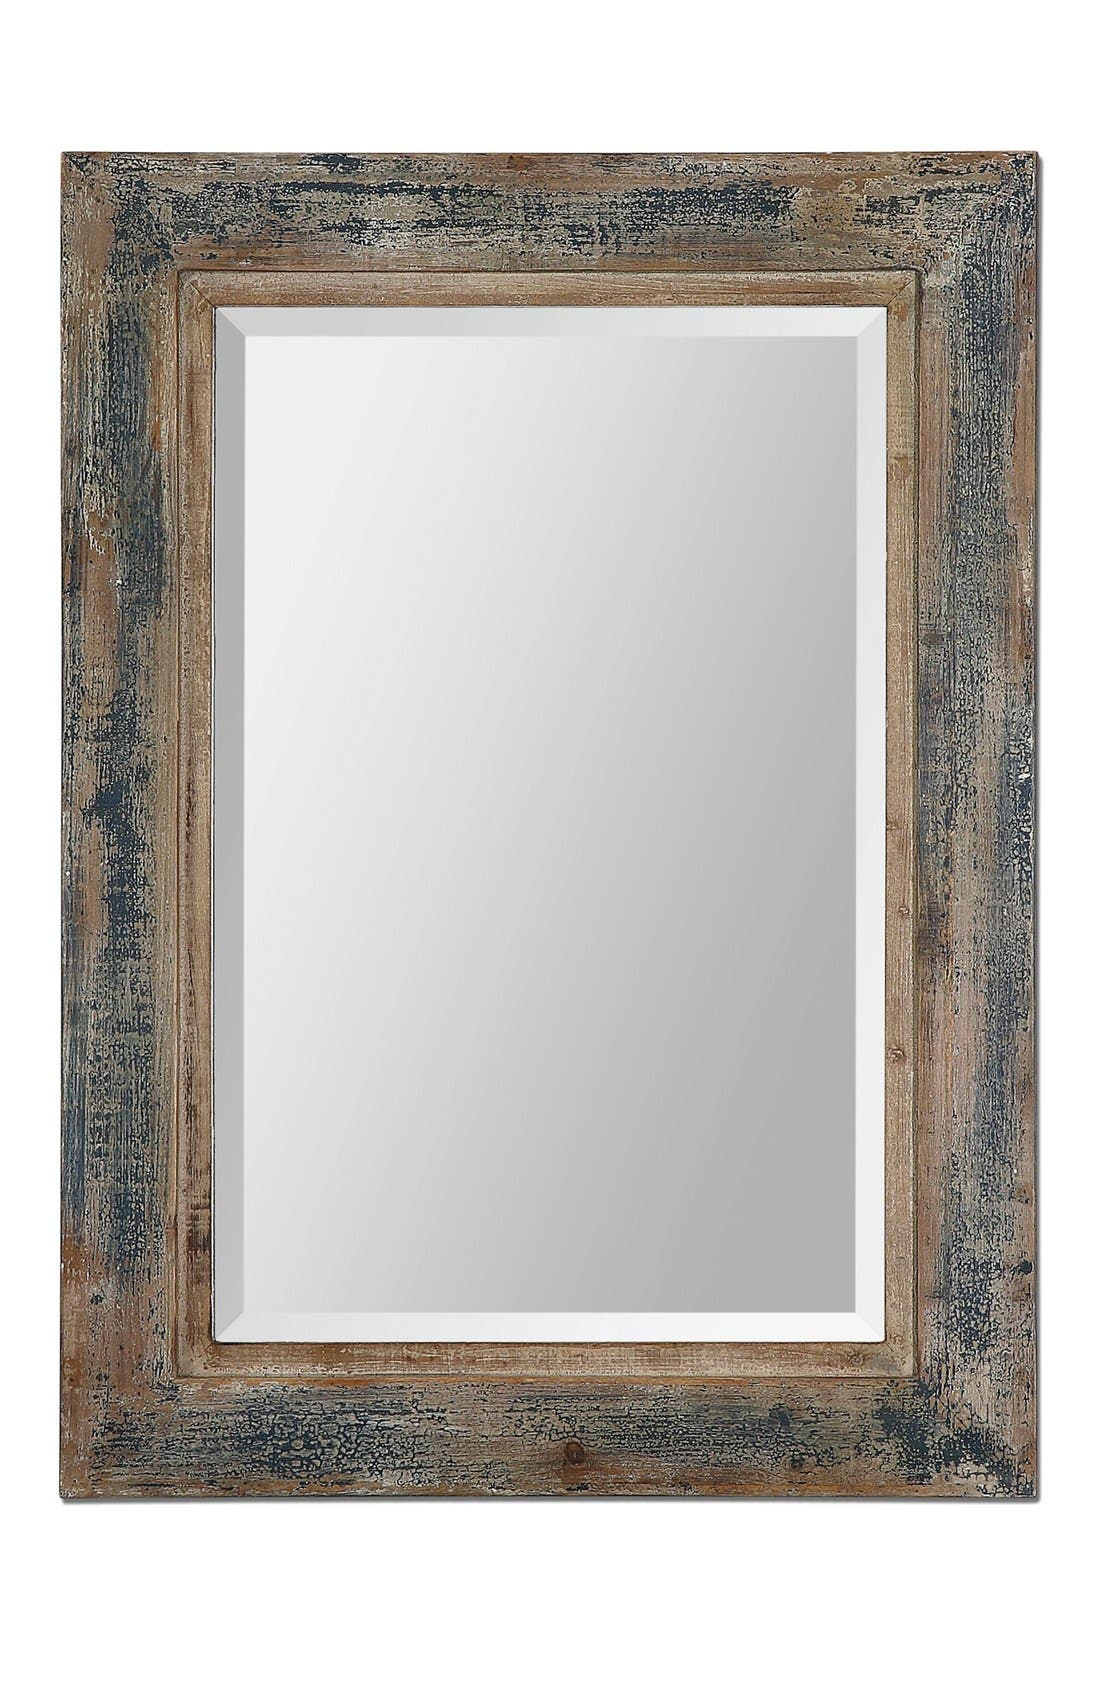 Main Image - Uttermost 'Bozeman' Distressed Wooden Mirror